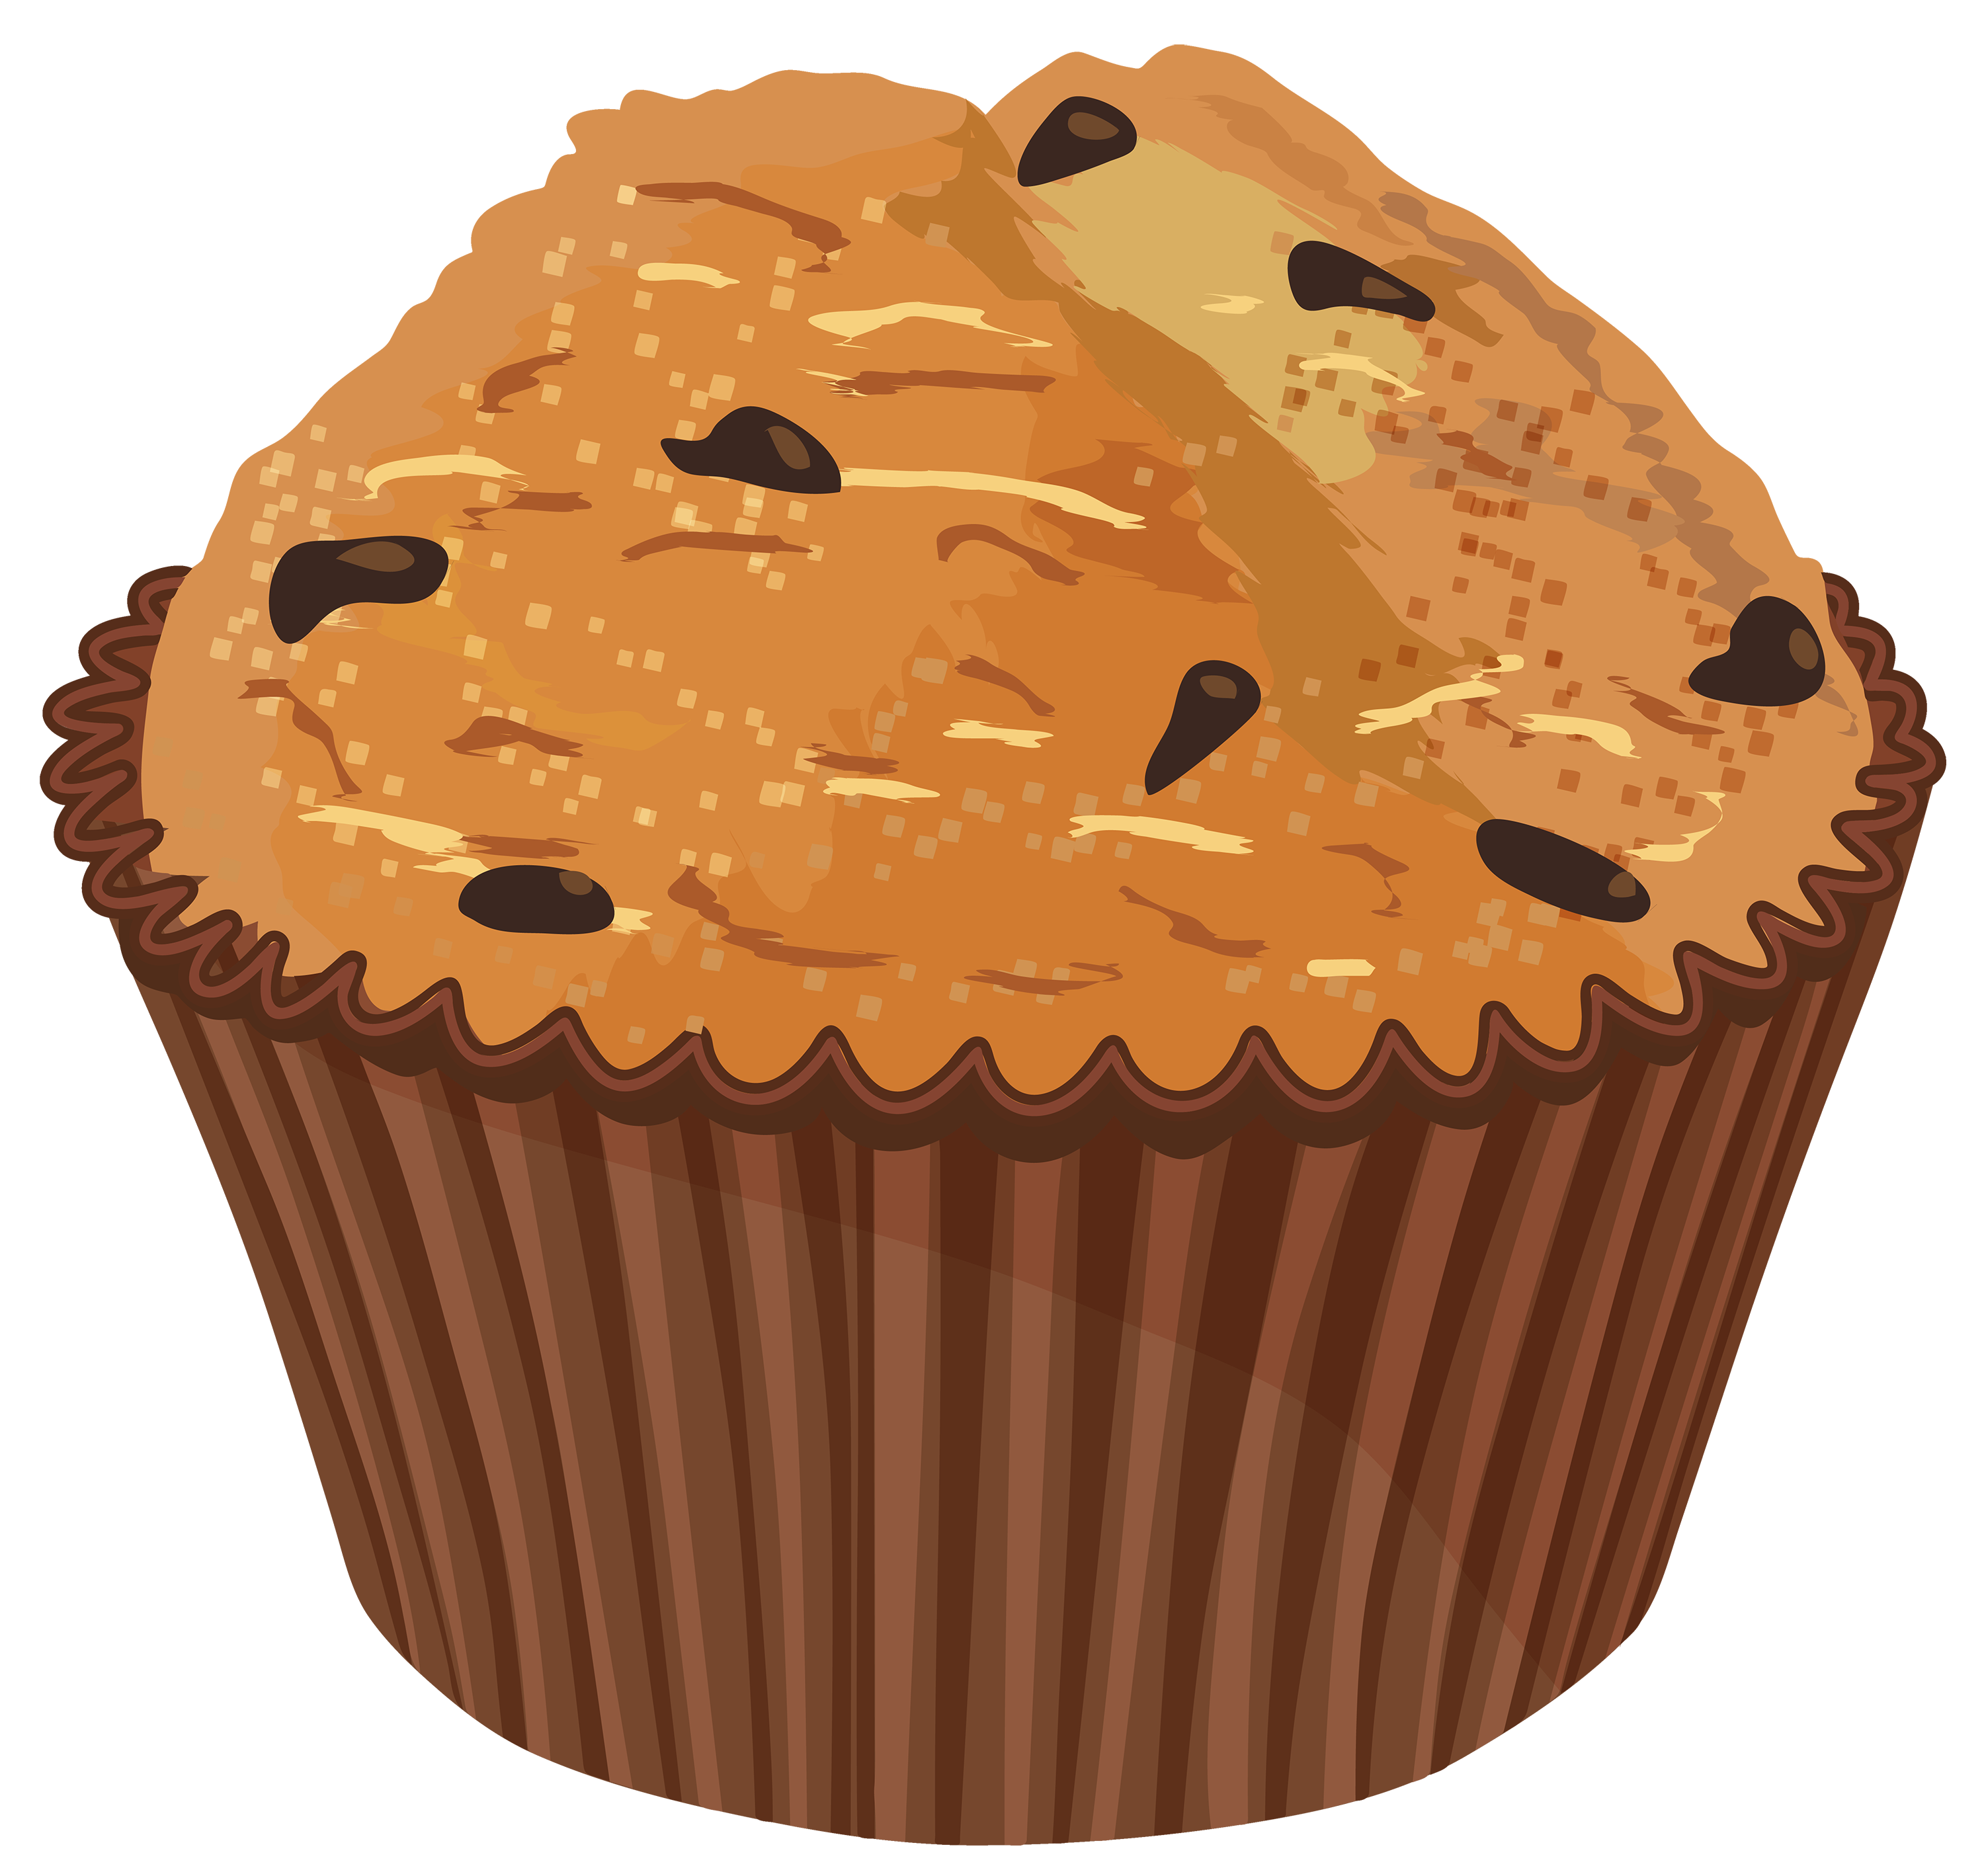 Muffin Clipart & Muffin Clip Art Images.